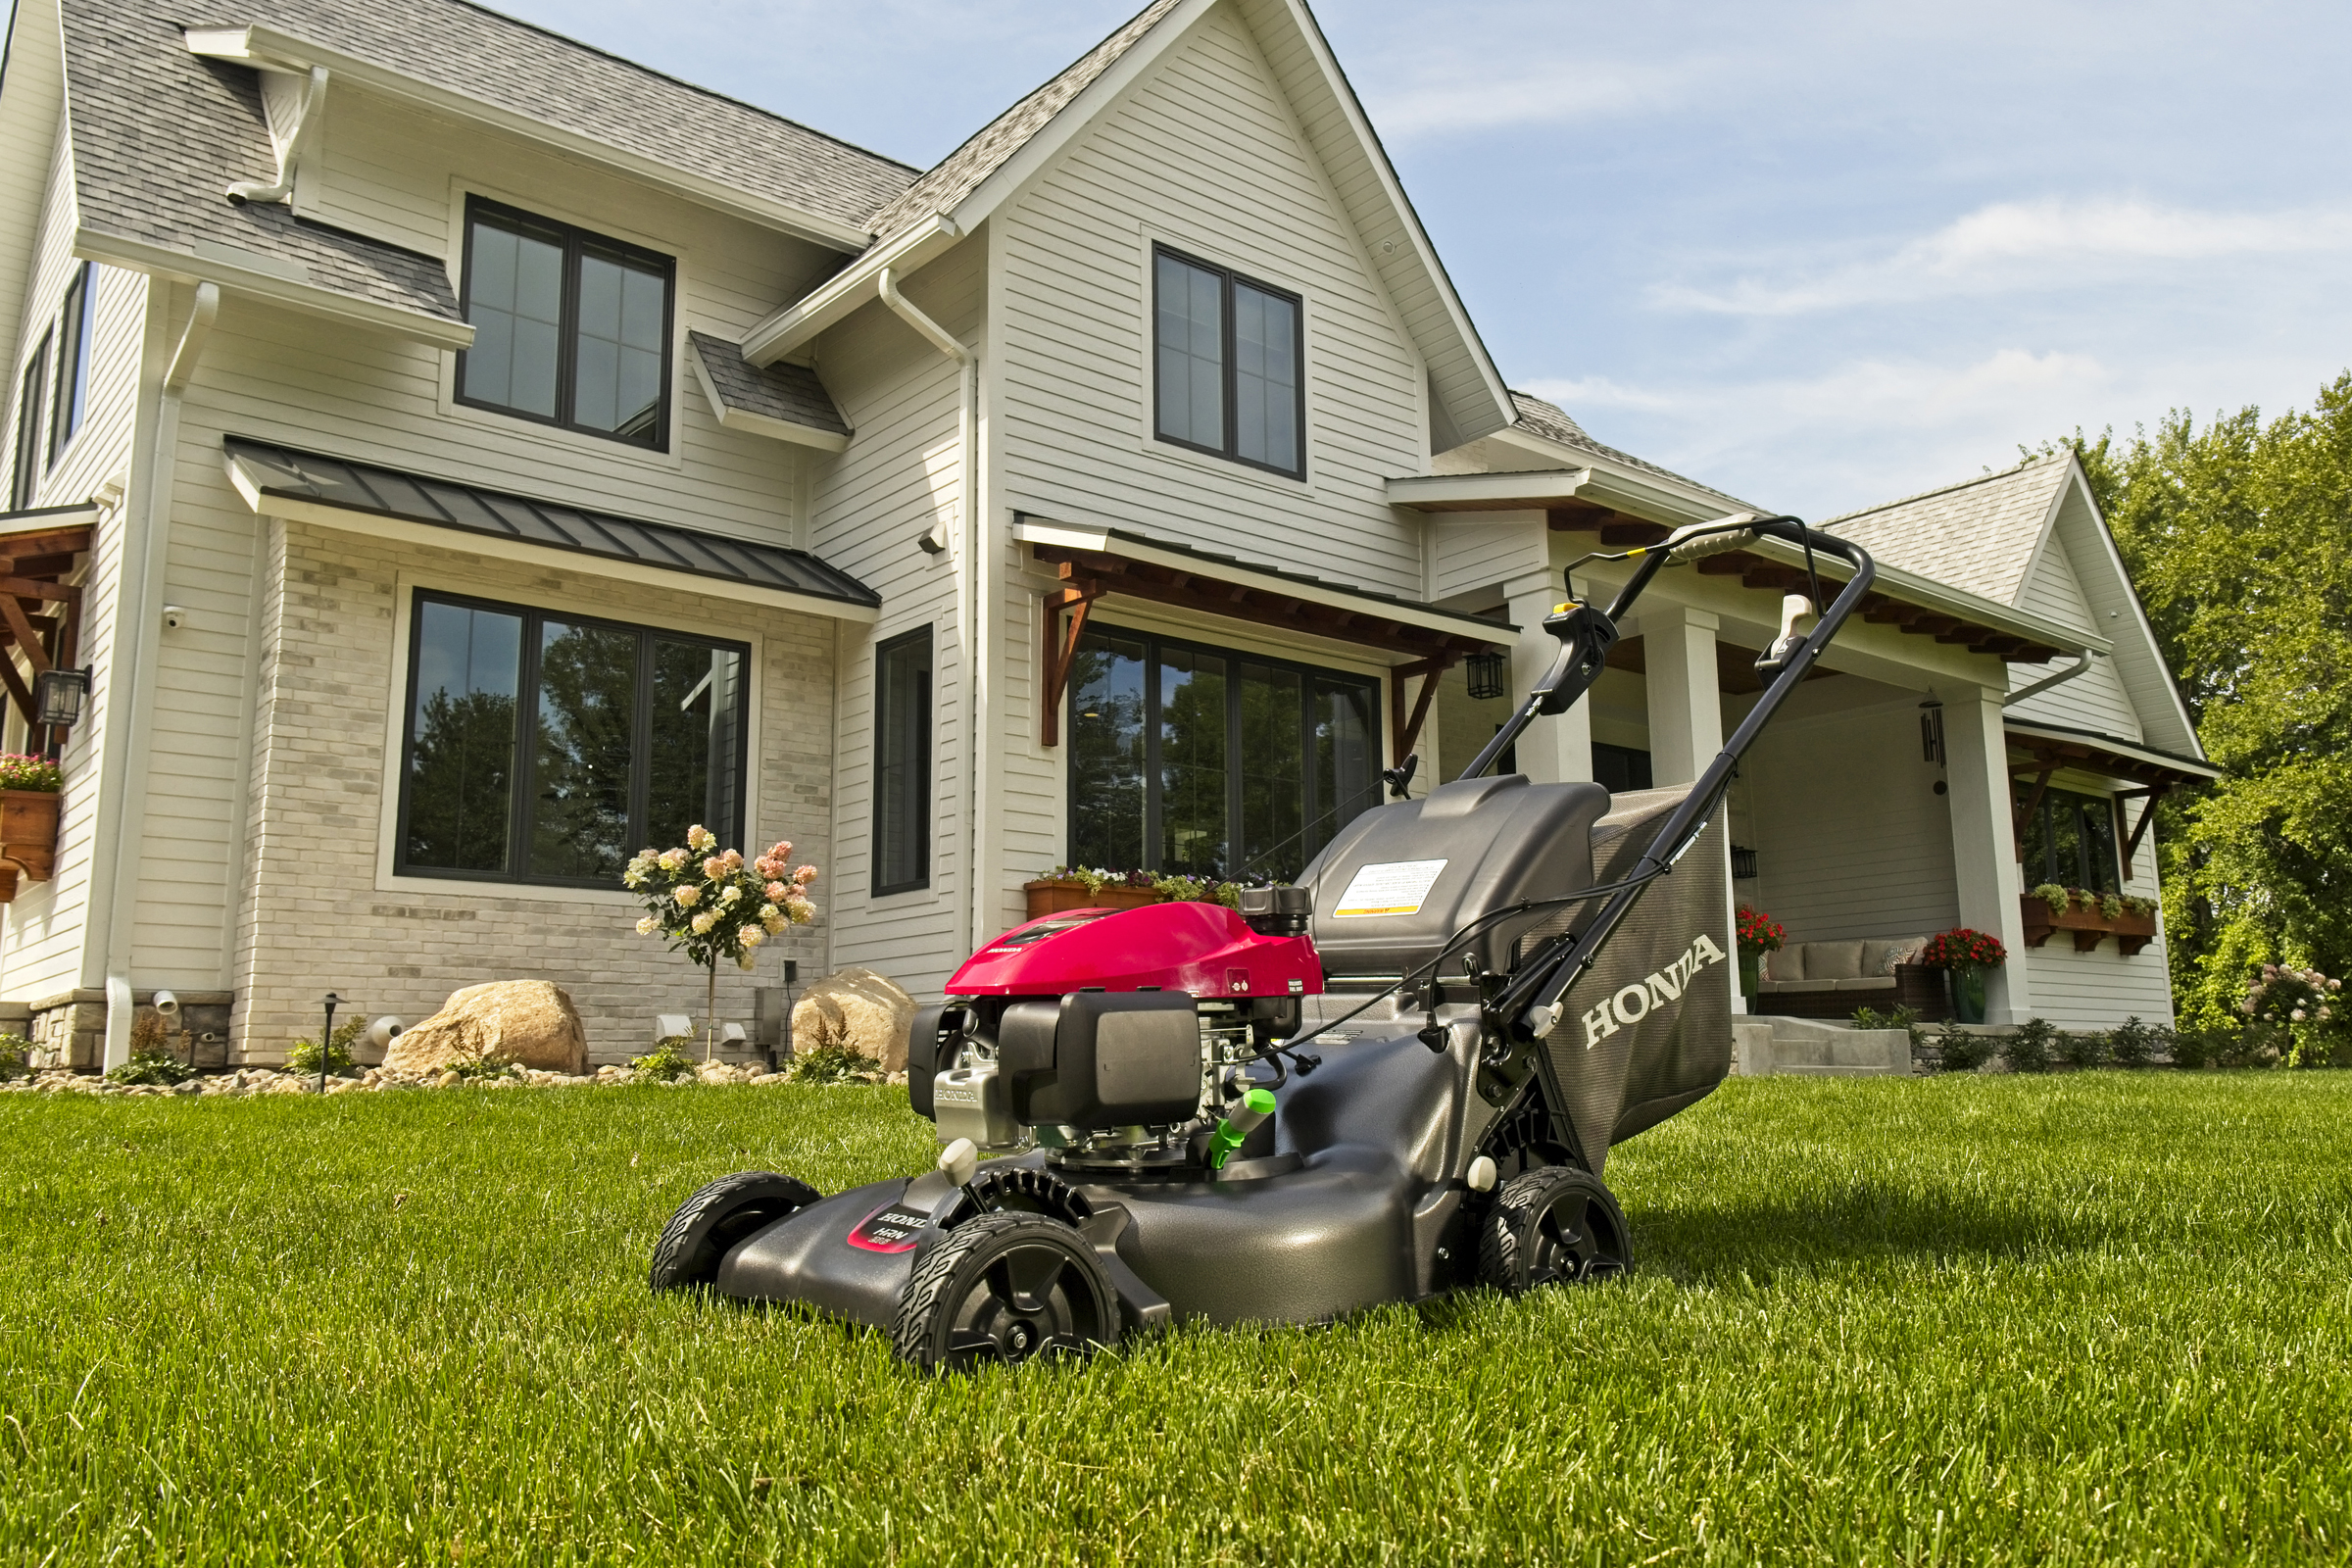 industry roundup  honda introduces new hrn series lawn mower